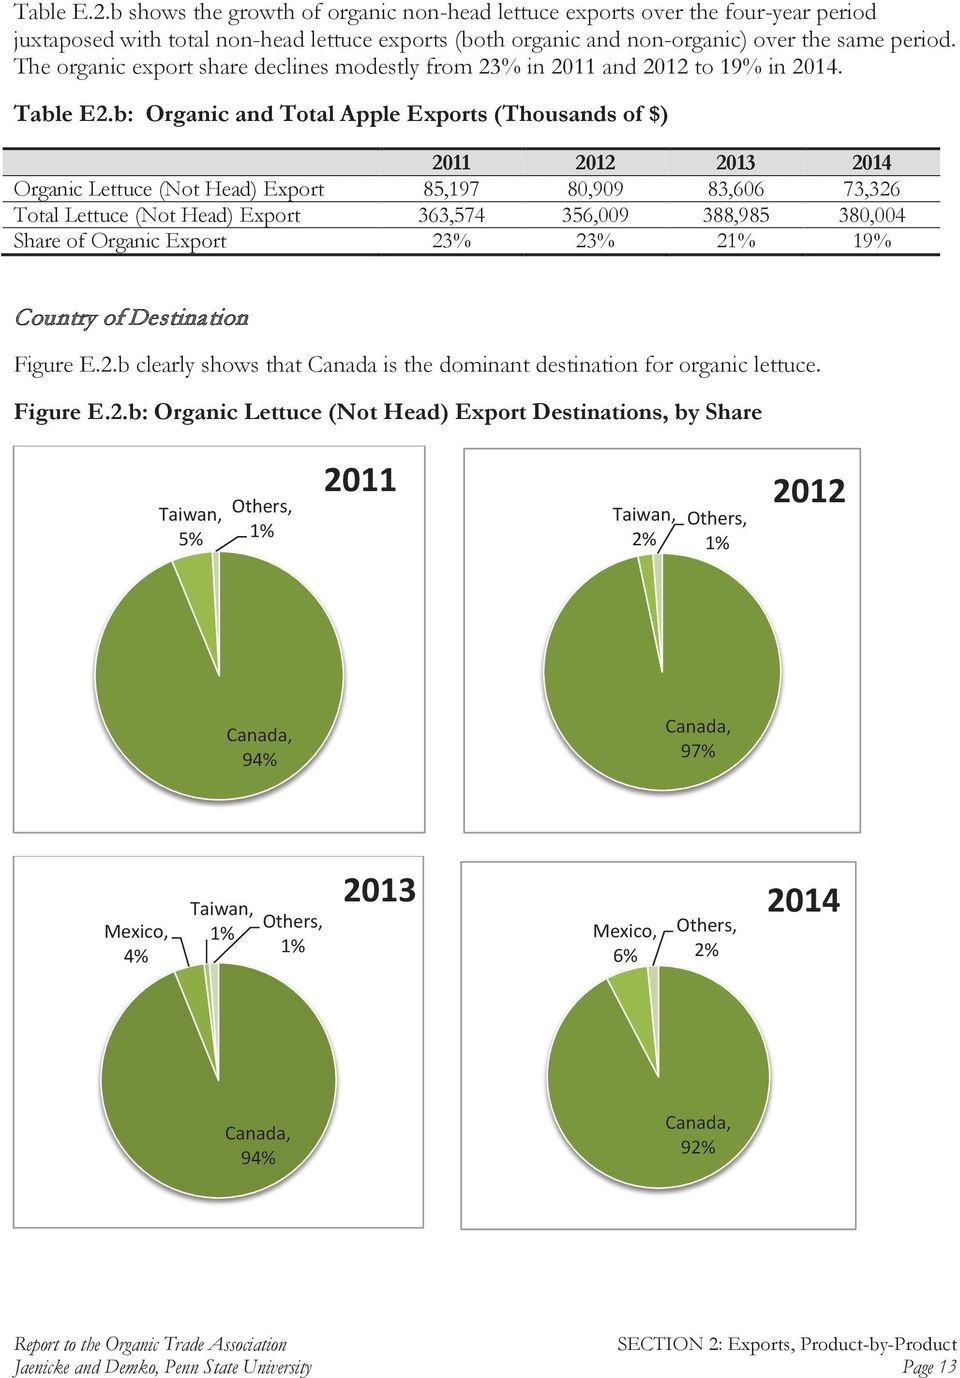 b: Organic and Total Apple Exports (Thousands of $) 2011 2012 2013 2014 Organic Lettuce (Not Head) Export 85,197 80,909 83,606 73,326 Total Lettuce (Not Head) Export 363,574 356,009 388,985 380,004